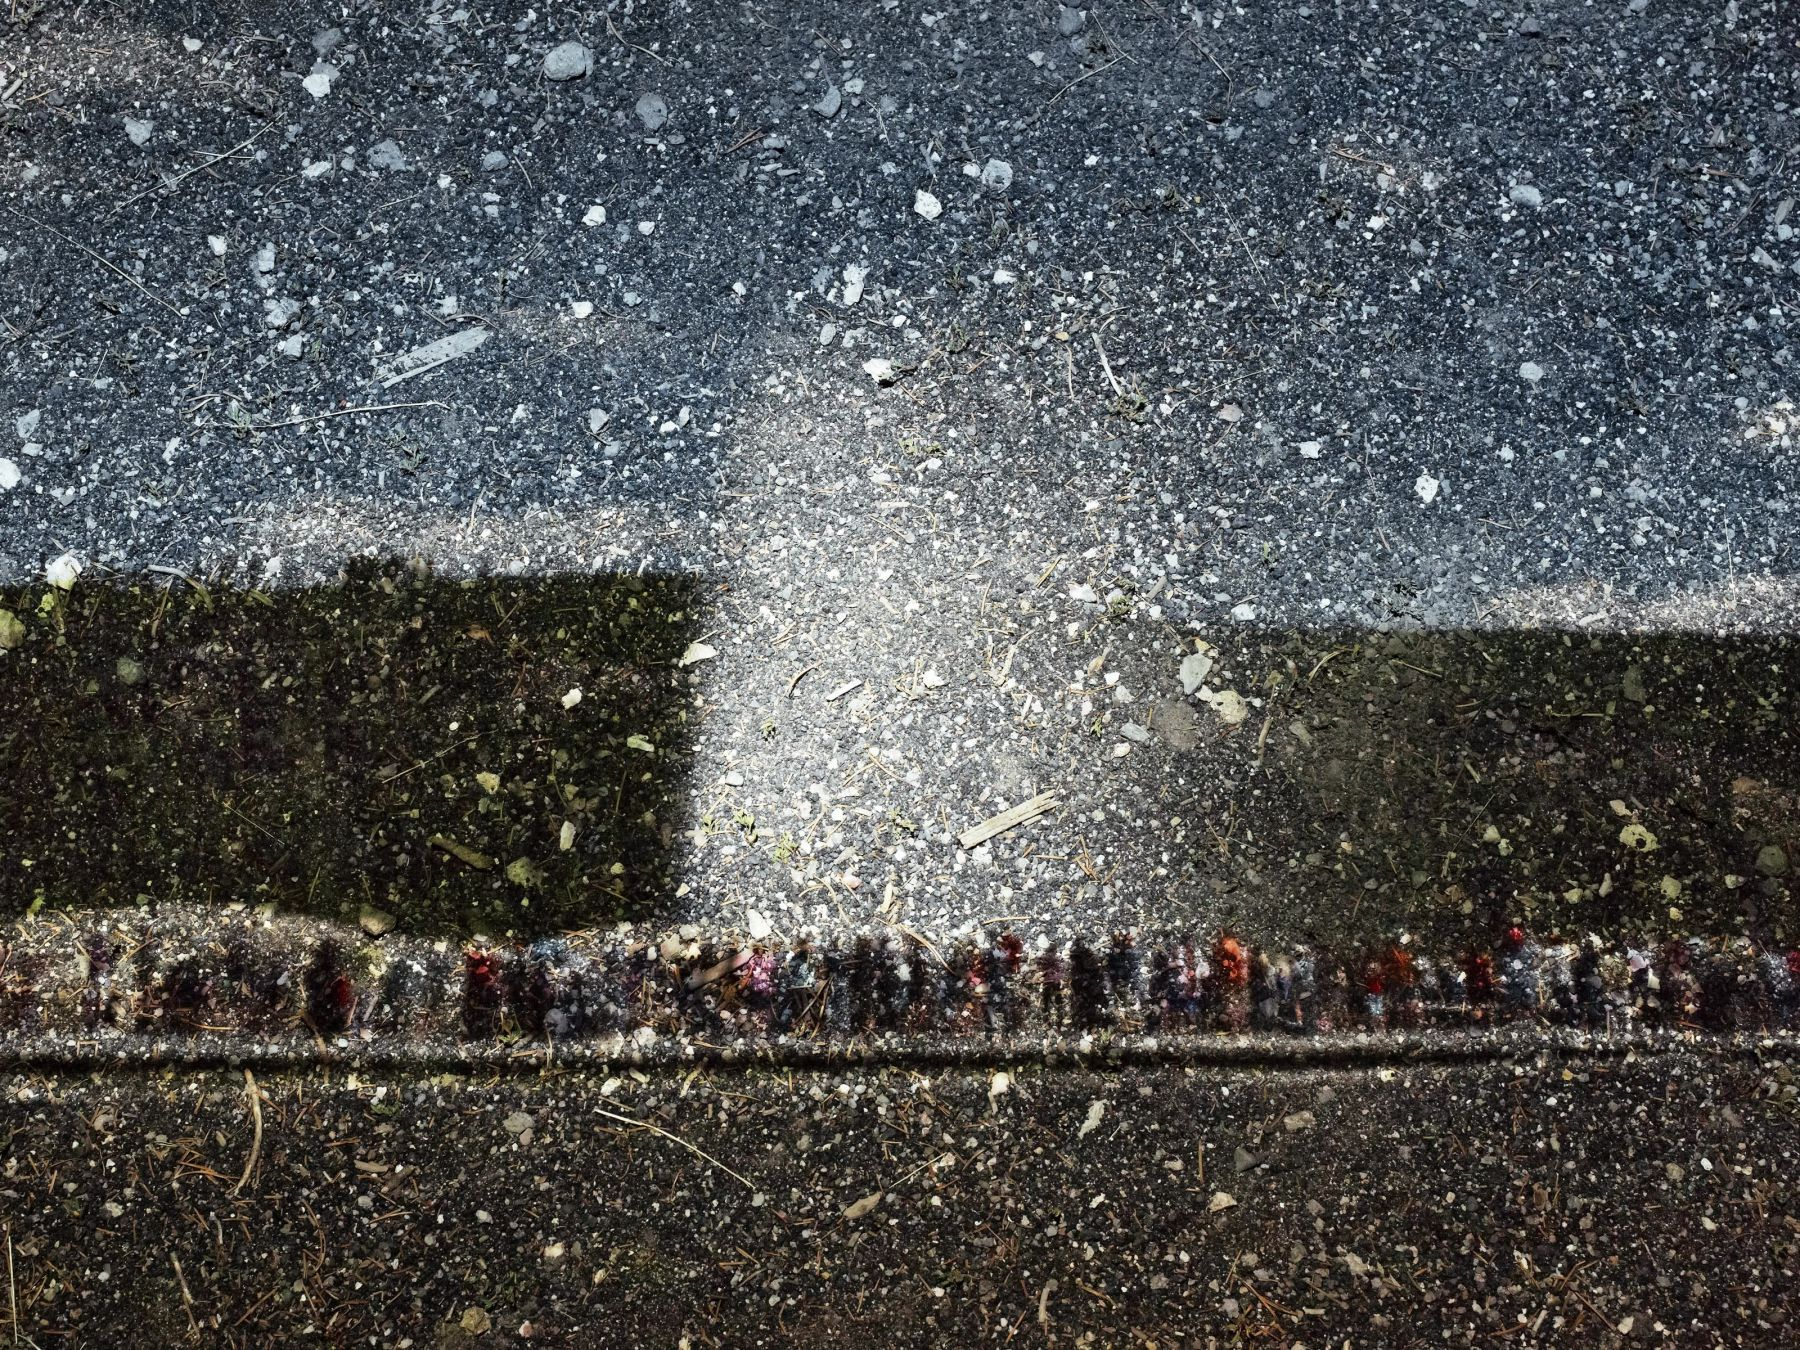 abelardo morell Tent-Camera Image on Ground: View of Old Faithful Geyser, Yellowstone National Park, Wyoming